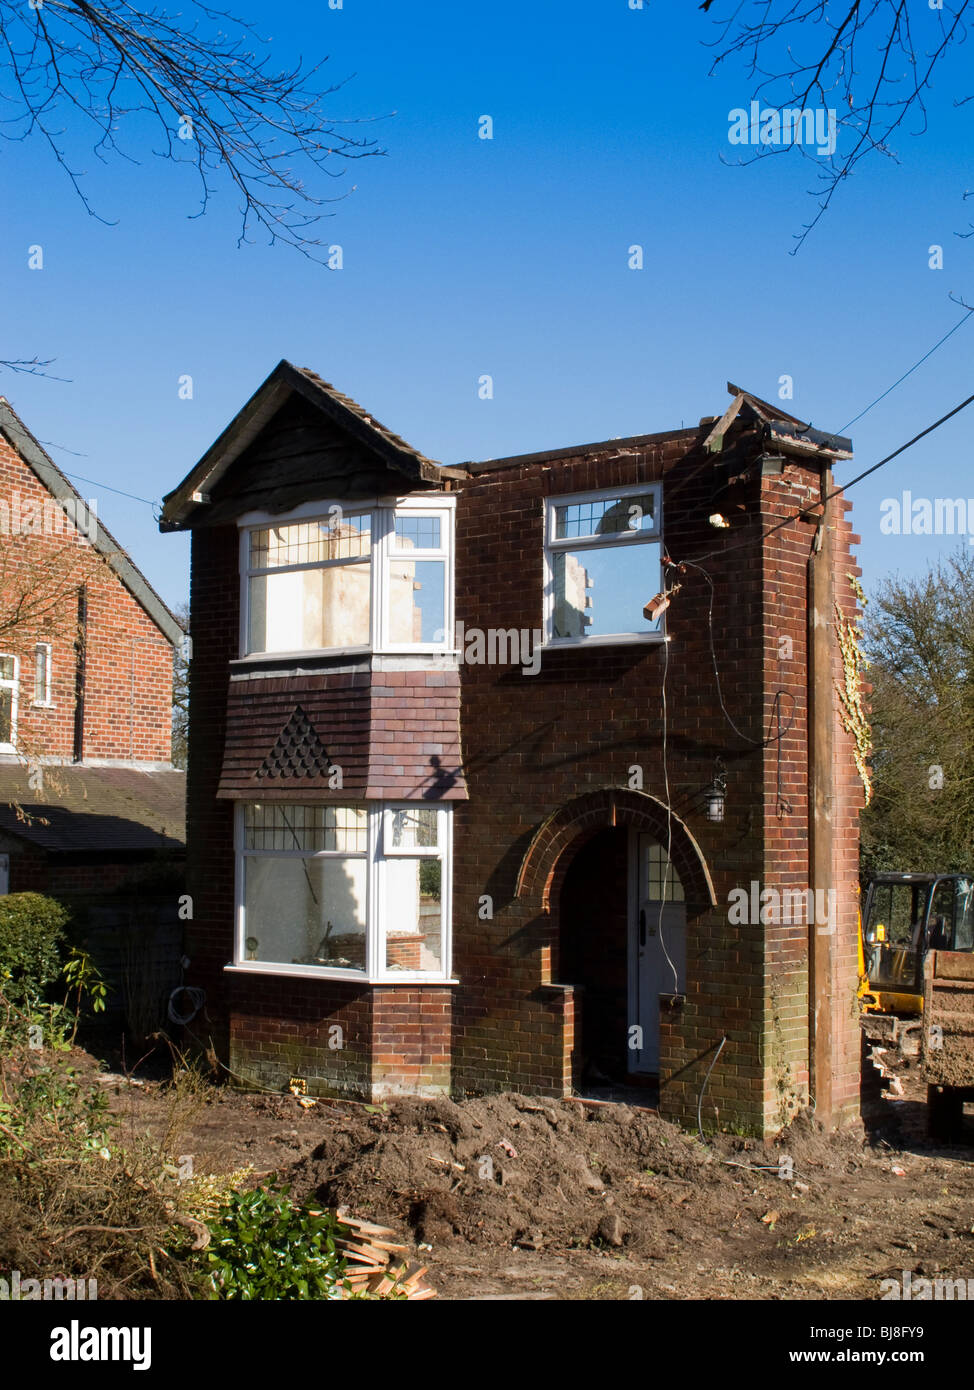 Cheshire, Mottram St Andrew, 1930 detached house being demolished to redevelop the site - Stock Image